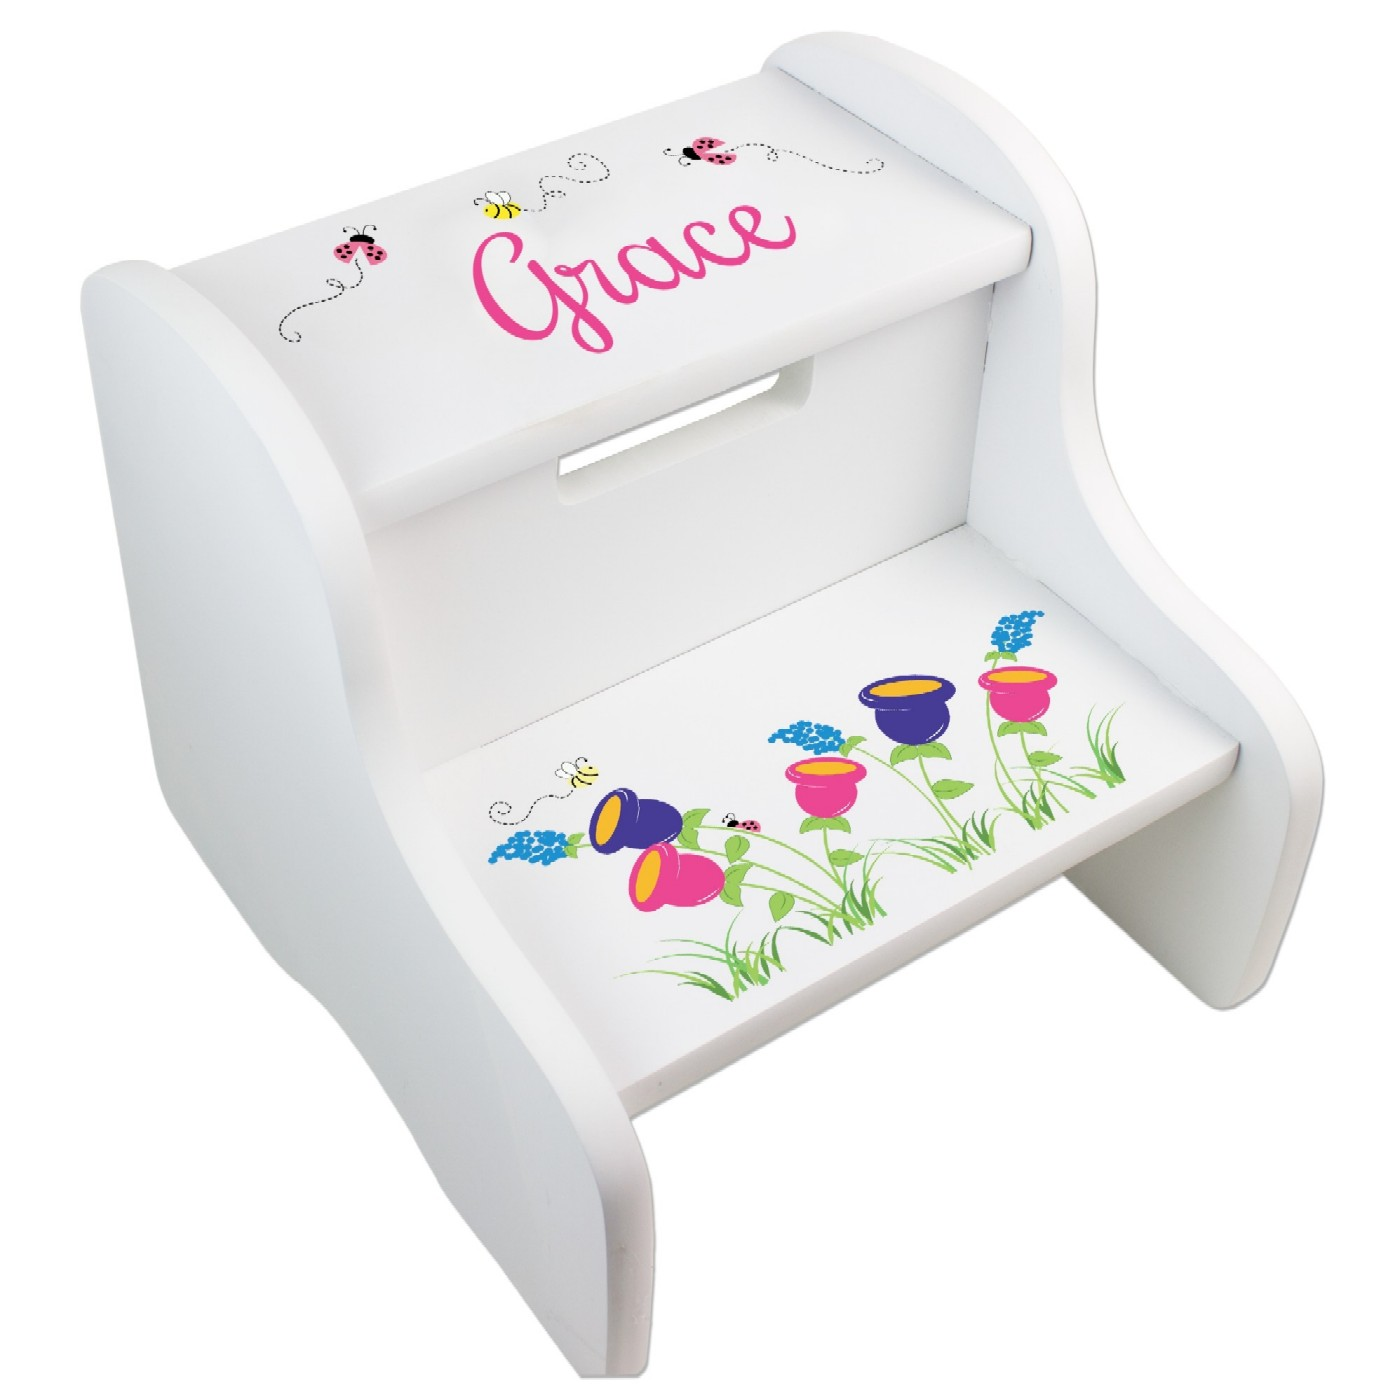 Personalized Imprinted Wooden Stools For Kids | SimplyUniqueBabyGifts.com  sc 1 st  Simply Unique Baby Gifts & Personalized Imprinted Wooden Stools For Kids ... islam-shia.org